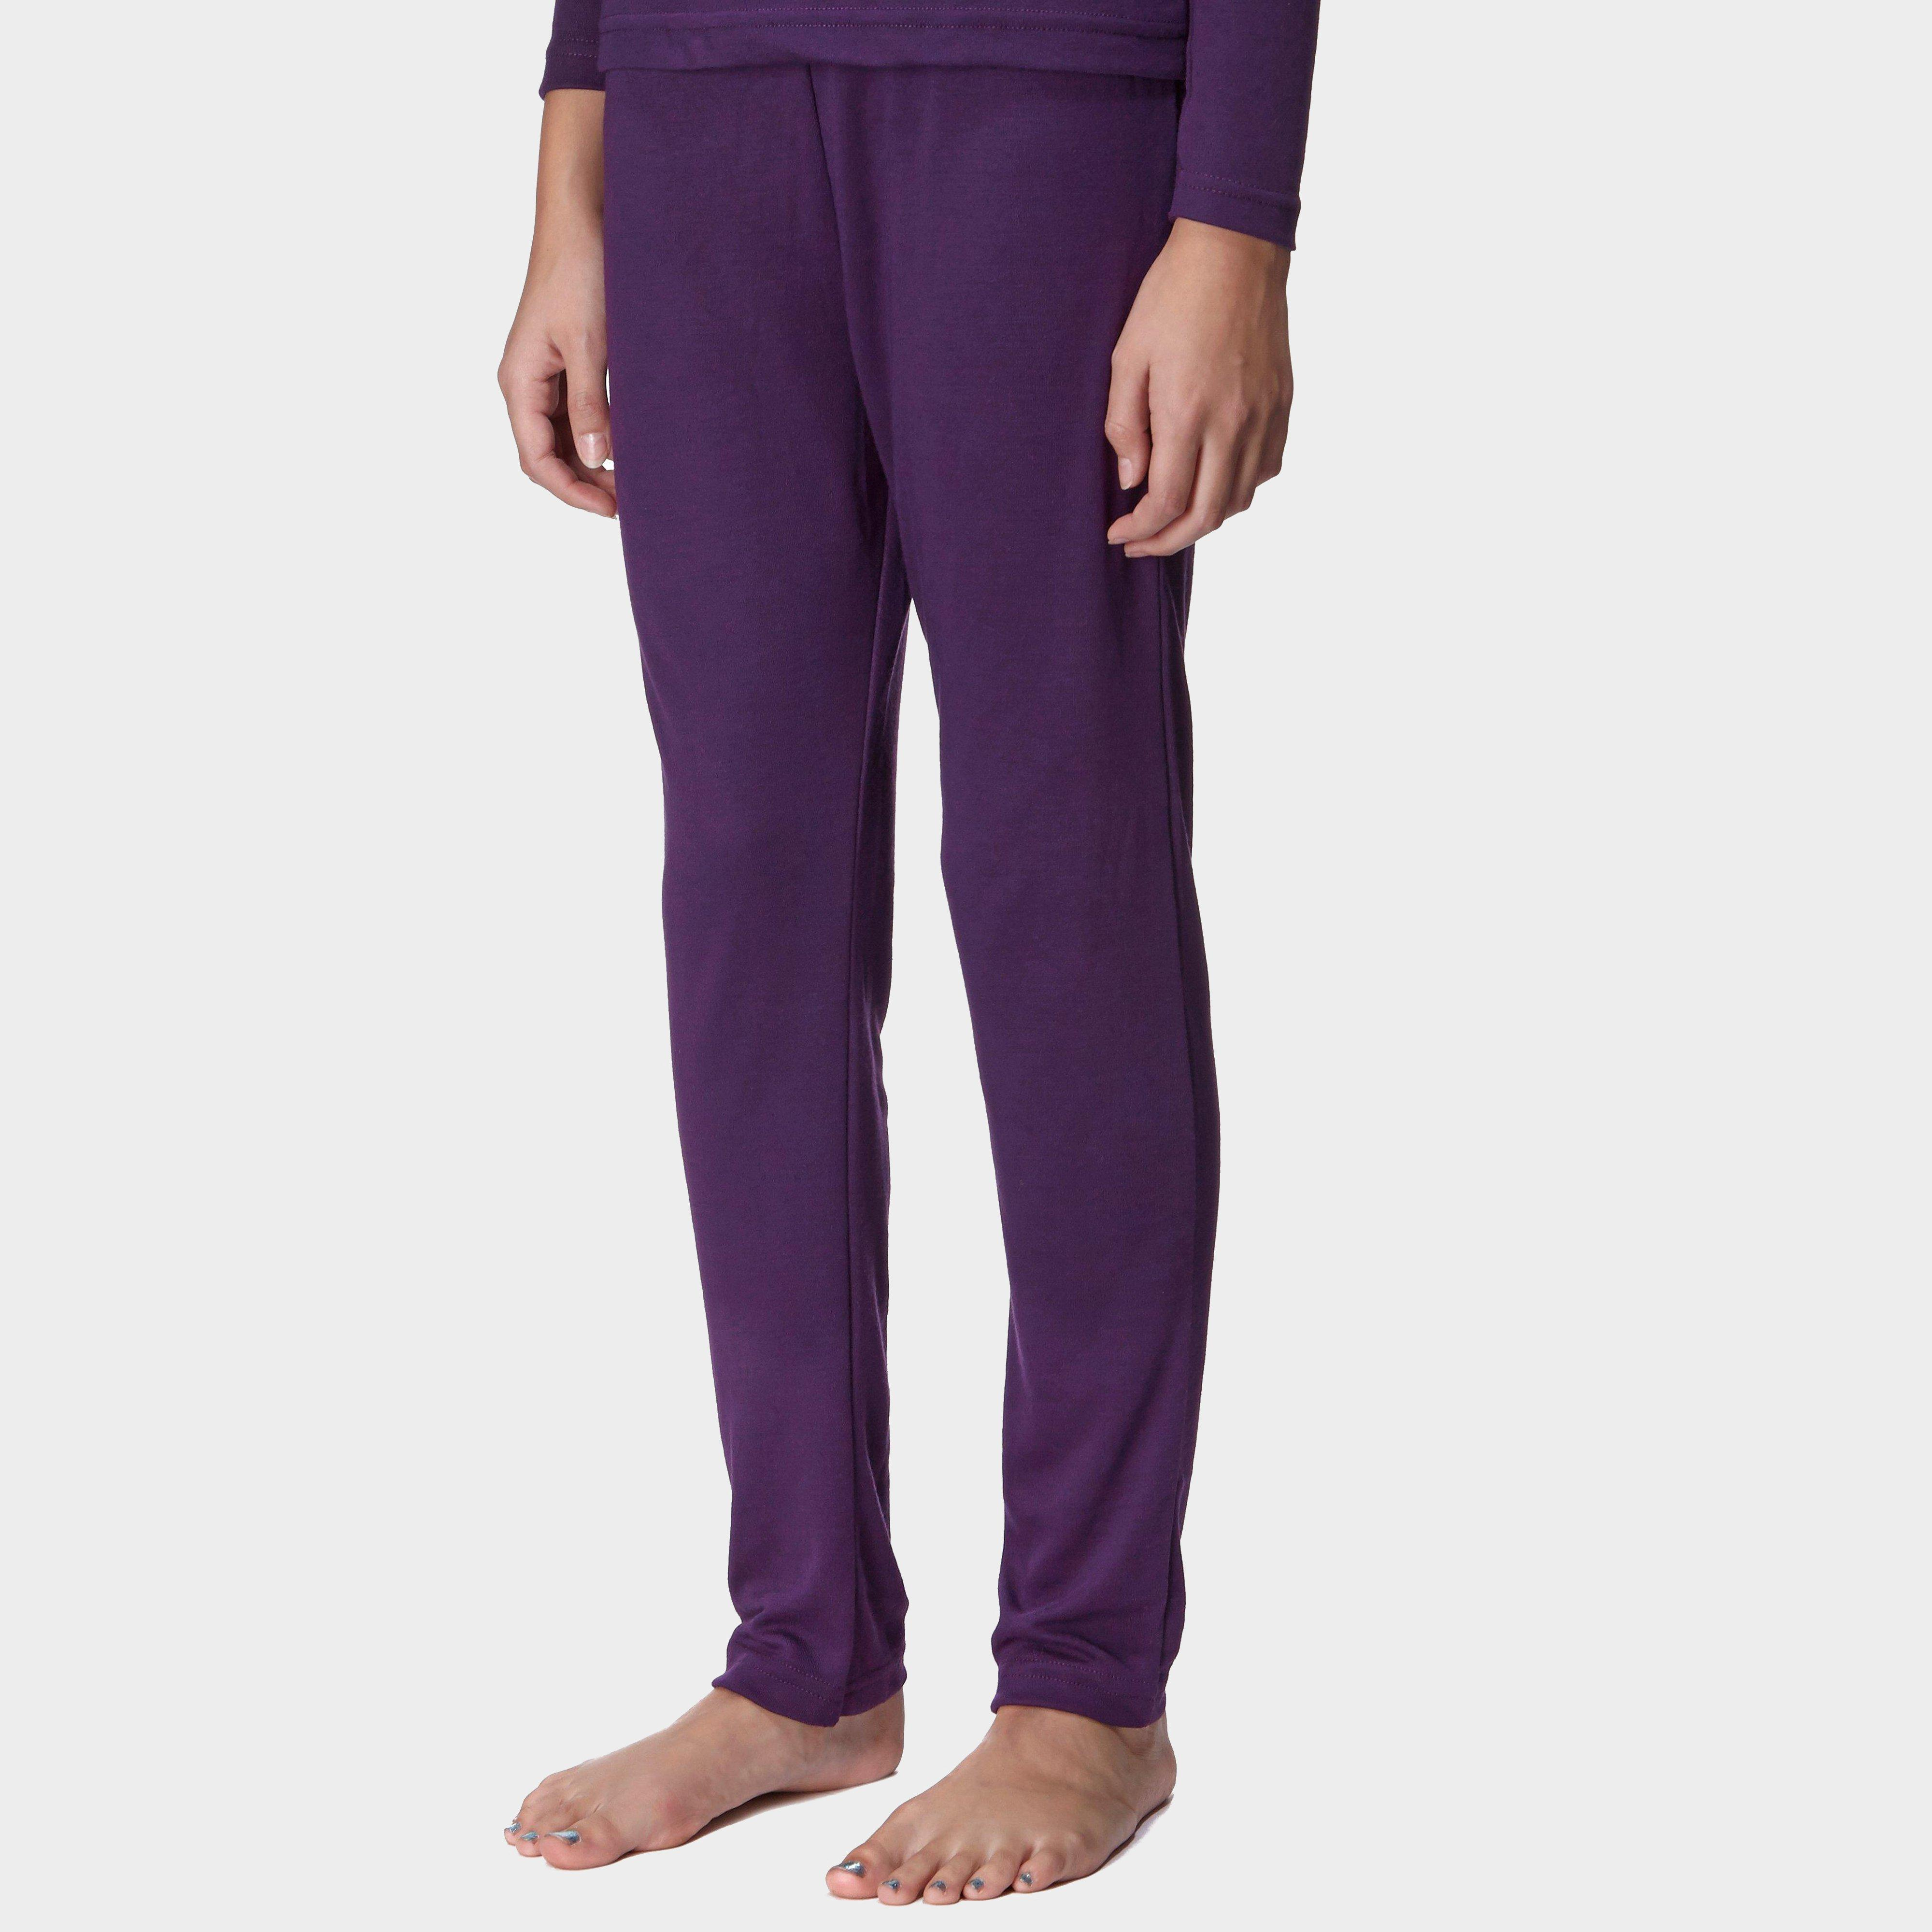 Image of Peter Storm Kids € Unisex Thermal Baselayer Pants - Purple/Purple, Purple/Purple